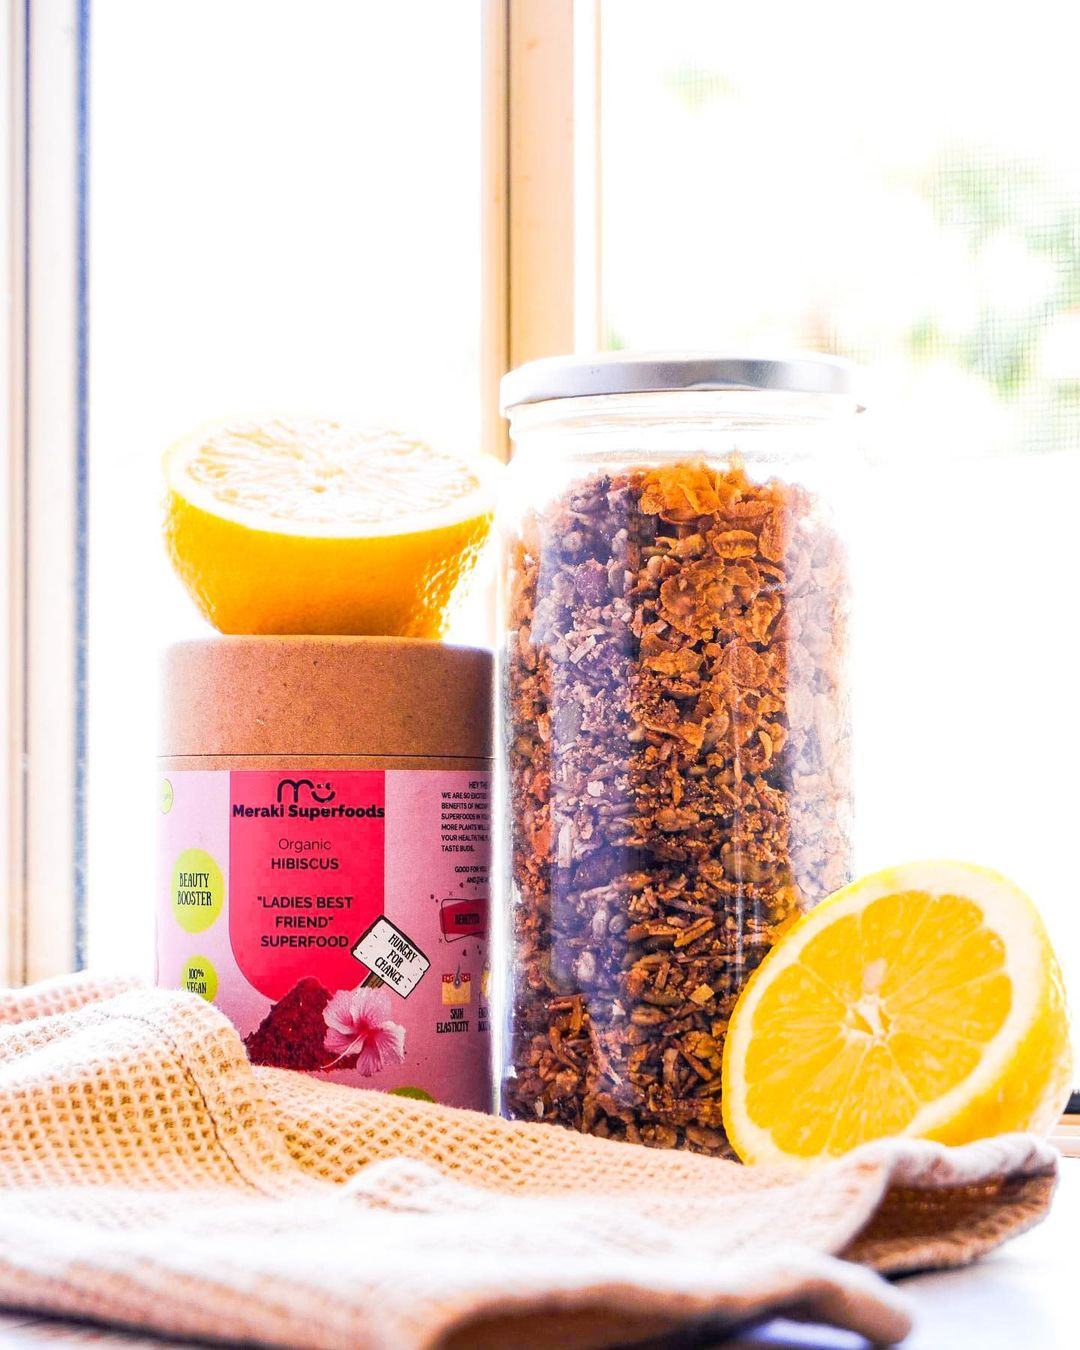 homemade granola is so underrated its a great addition t display image  802c6108